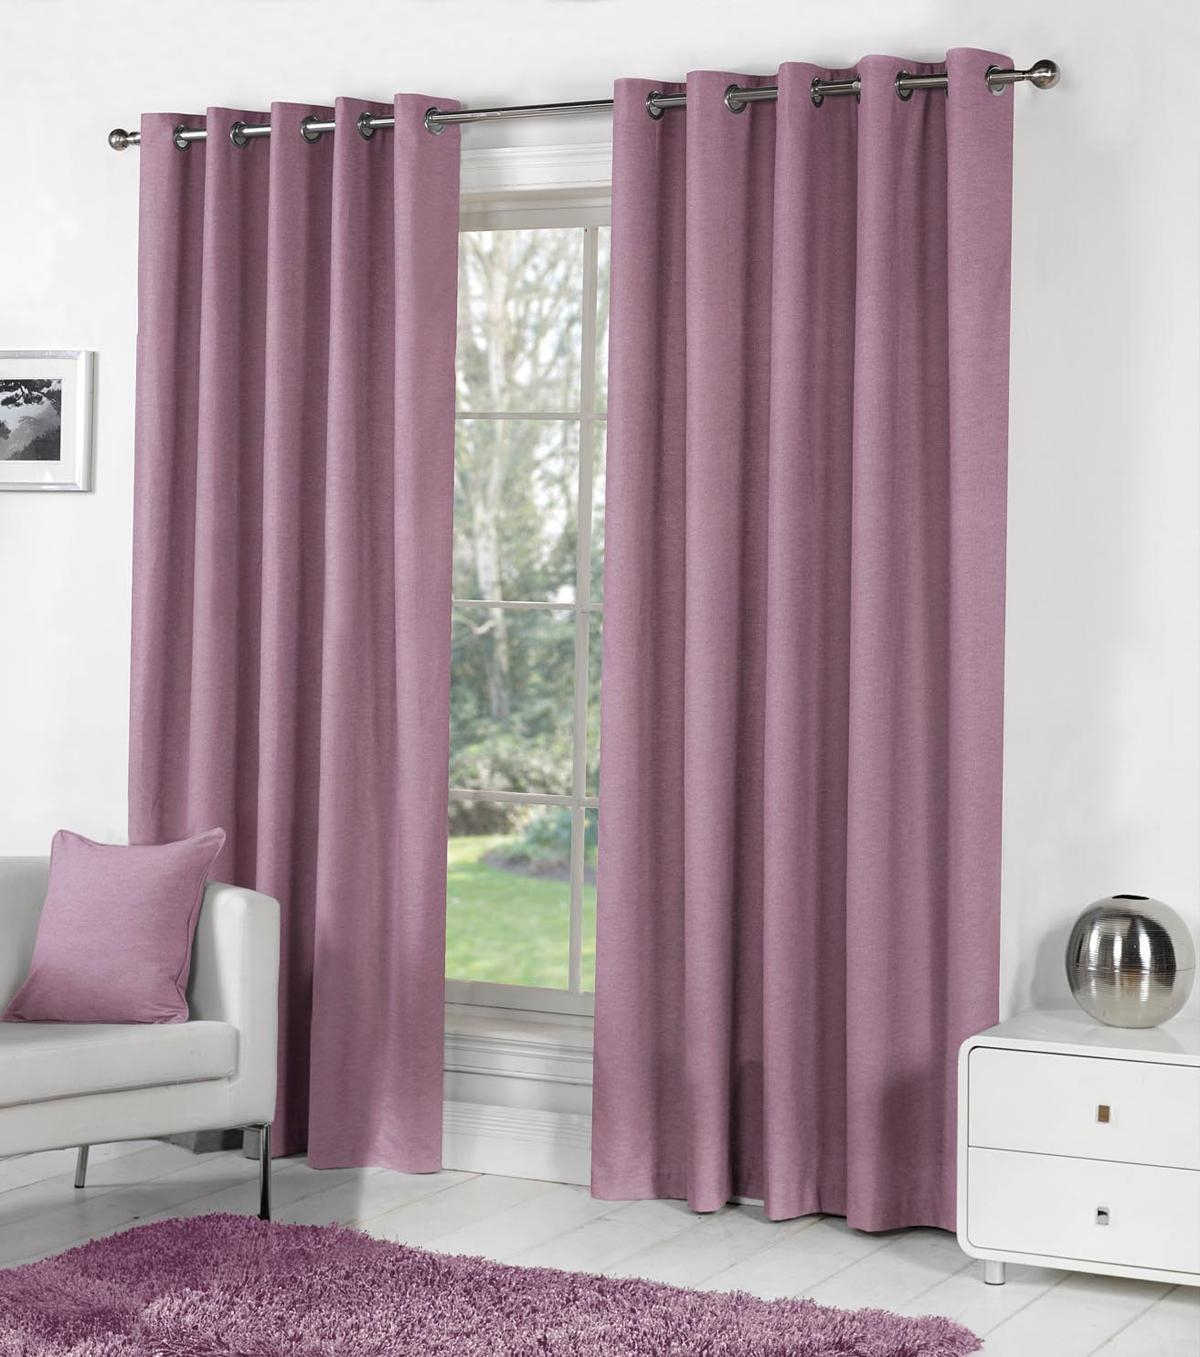 15 best collection of ready made curtains for bay windows. Black Bedroom Furniture Sets. Home Design Ideas